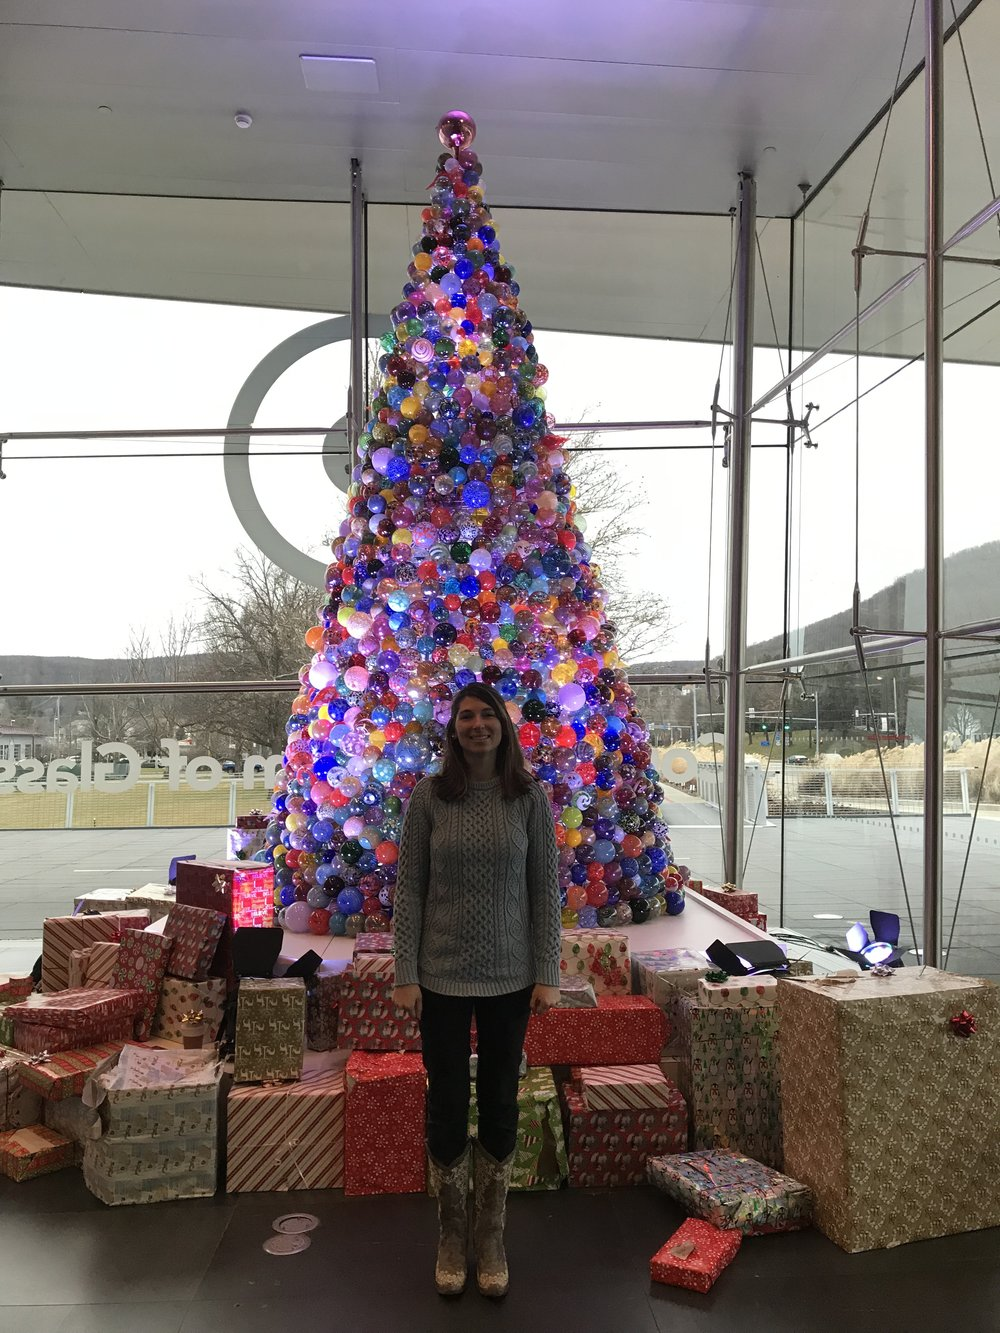 Annual winter break tradition to get a photo with this glass tree at Corning Museum of Glass in Corning, NY.